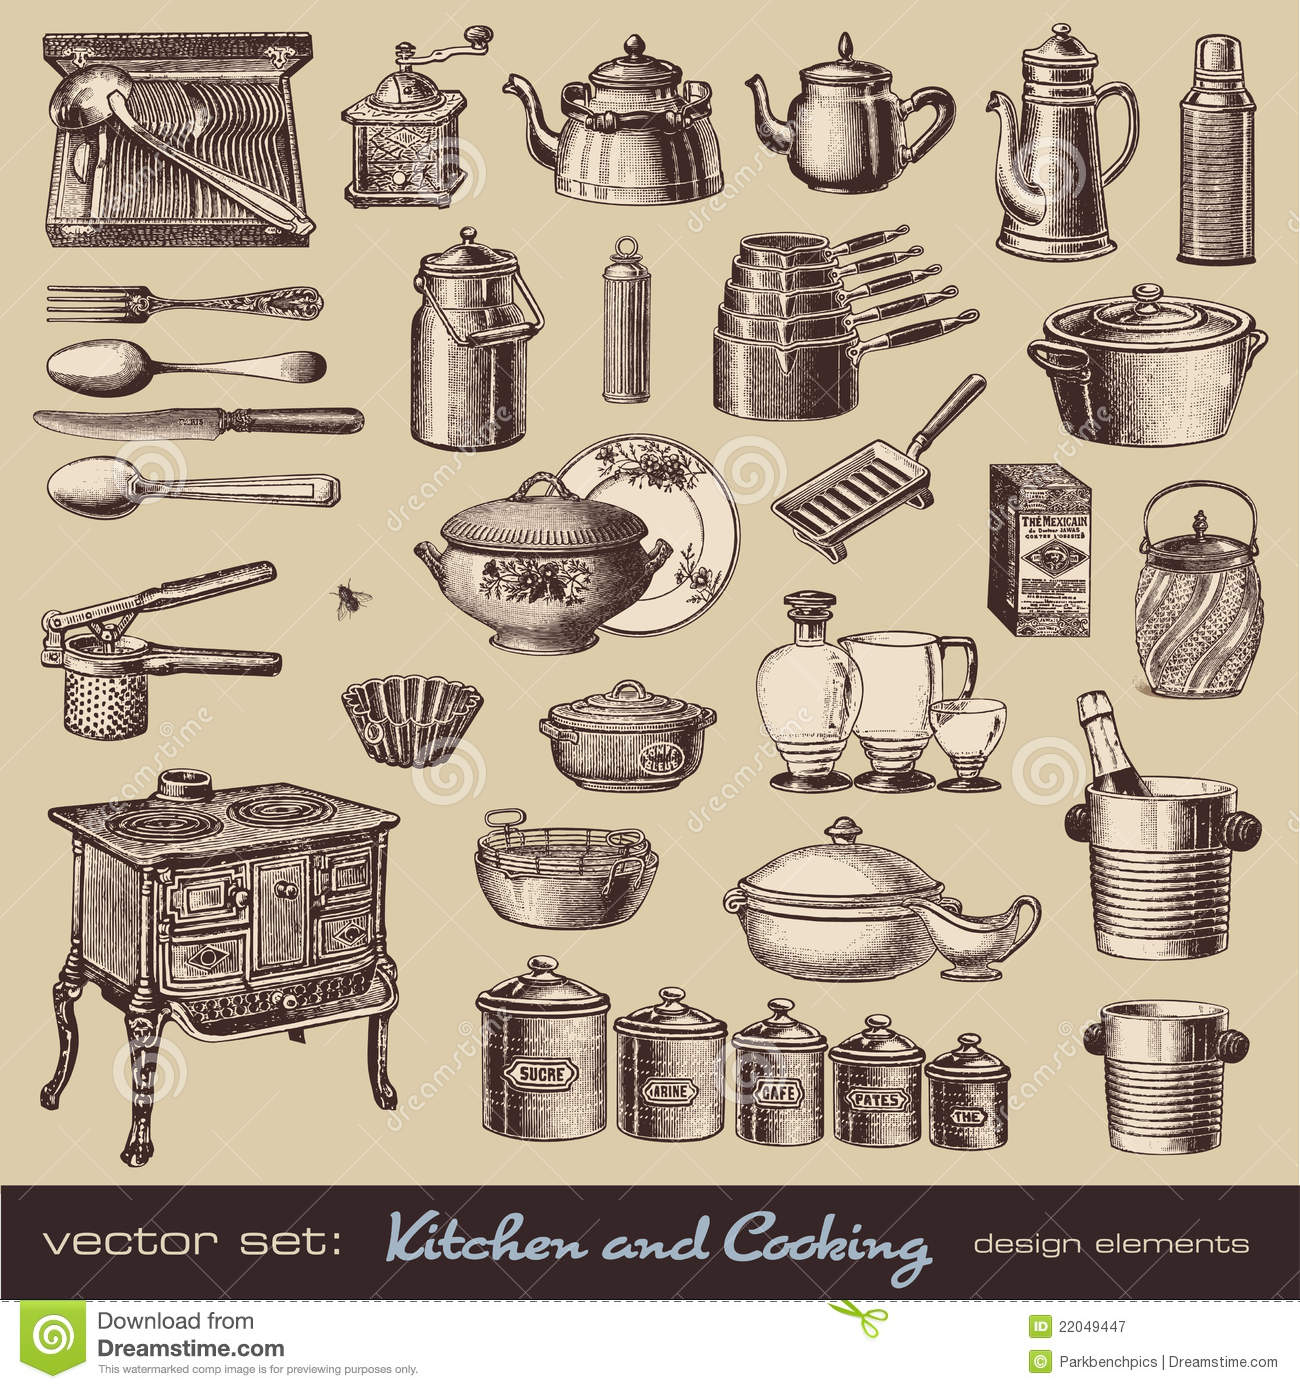 Kitchen And Cooking Design Elements Stock Vector